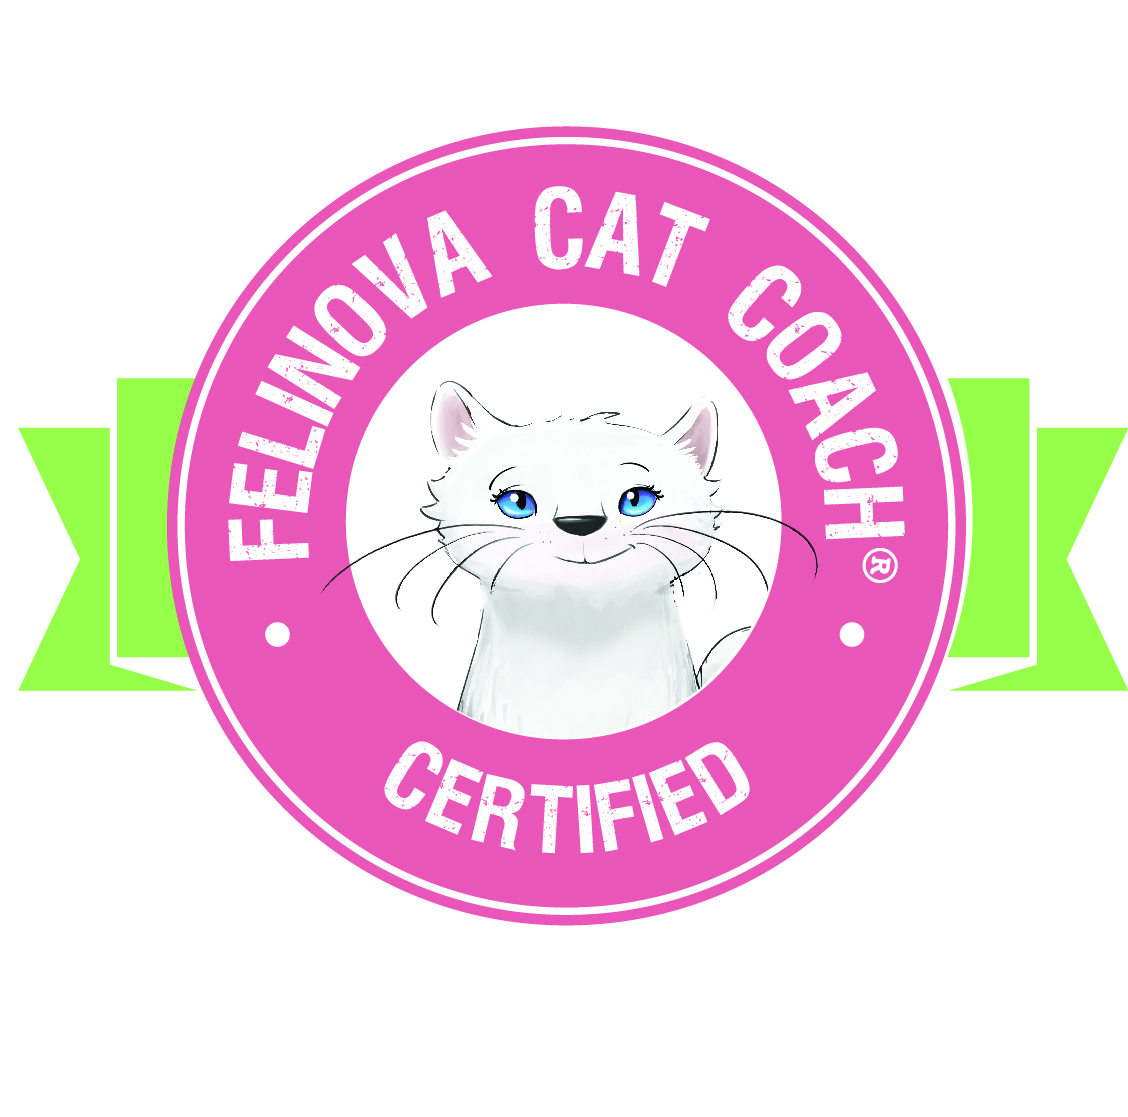 Felinova Cat Coaches